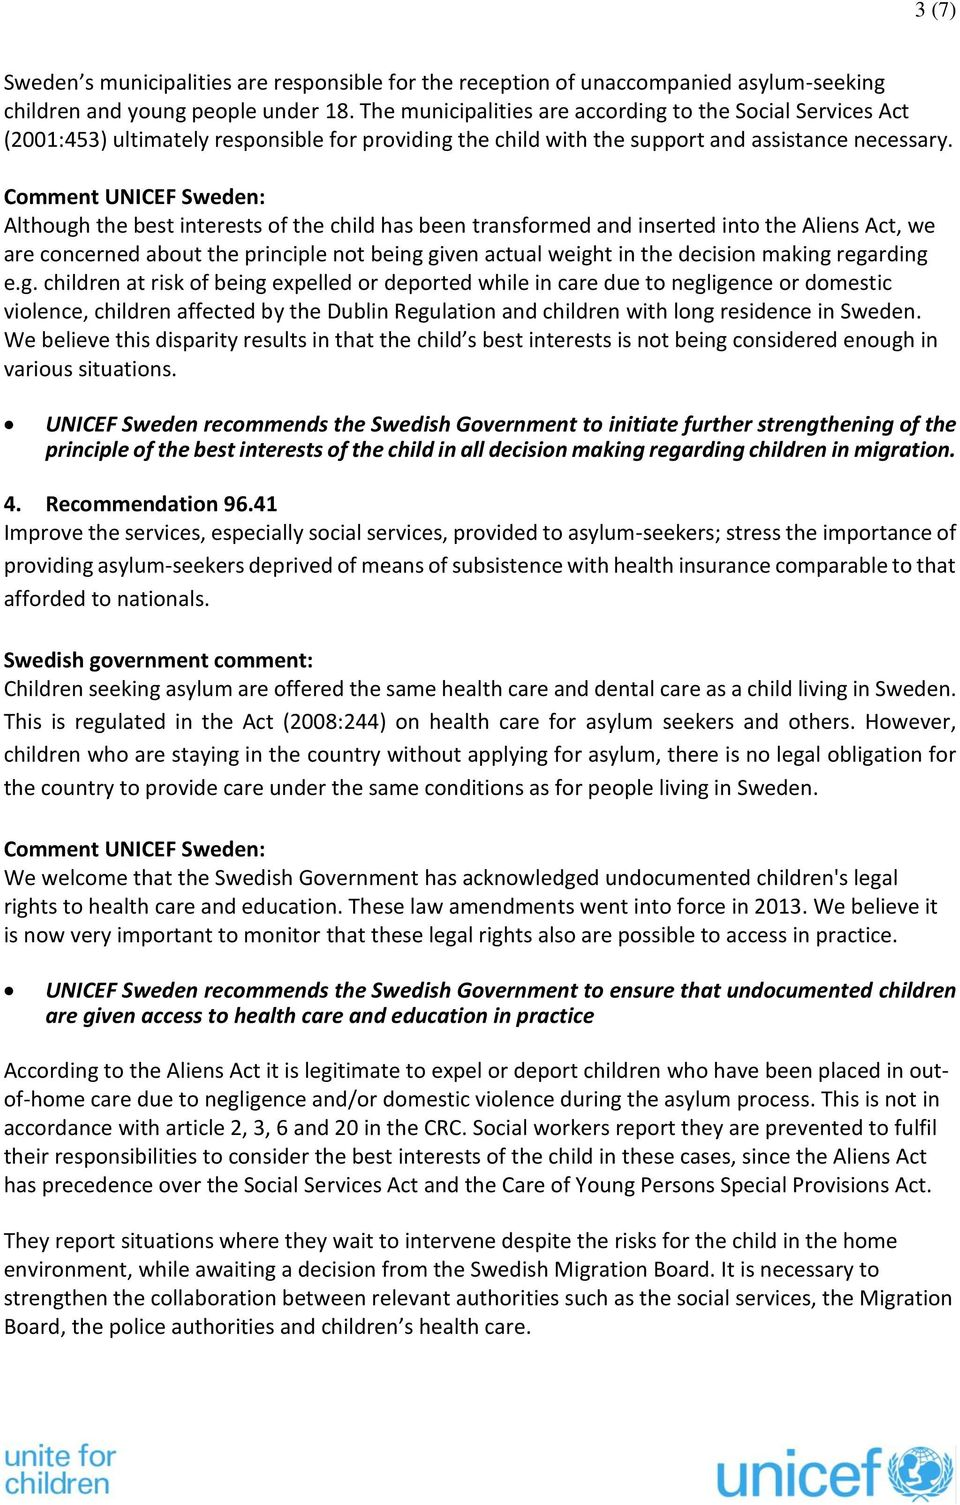 Although the best interests of the child has been transformed and inserted into the Aliens Act, we are concerned about the principle not being given actual weight in the decision making regarding e.g. children at risk of being expelled or deported while in care due to negligence or domestic violence, children affected by the Dublin Regulation and children with long residence in Sweden.